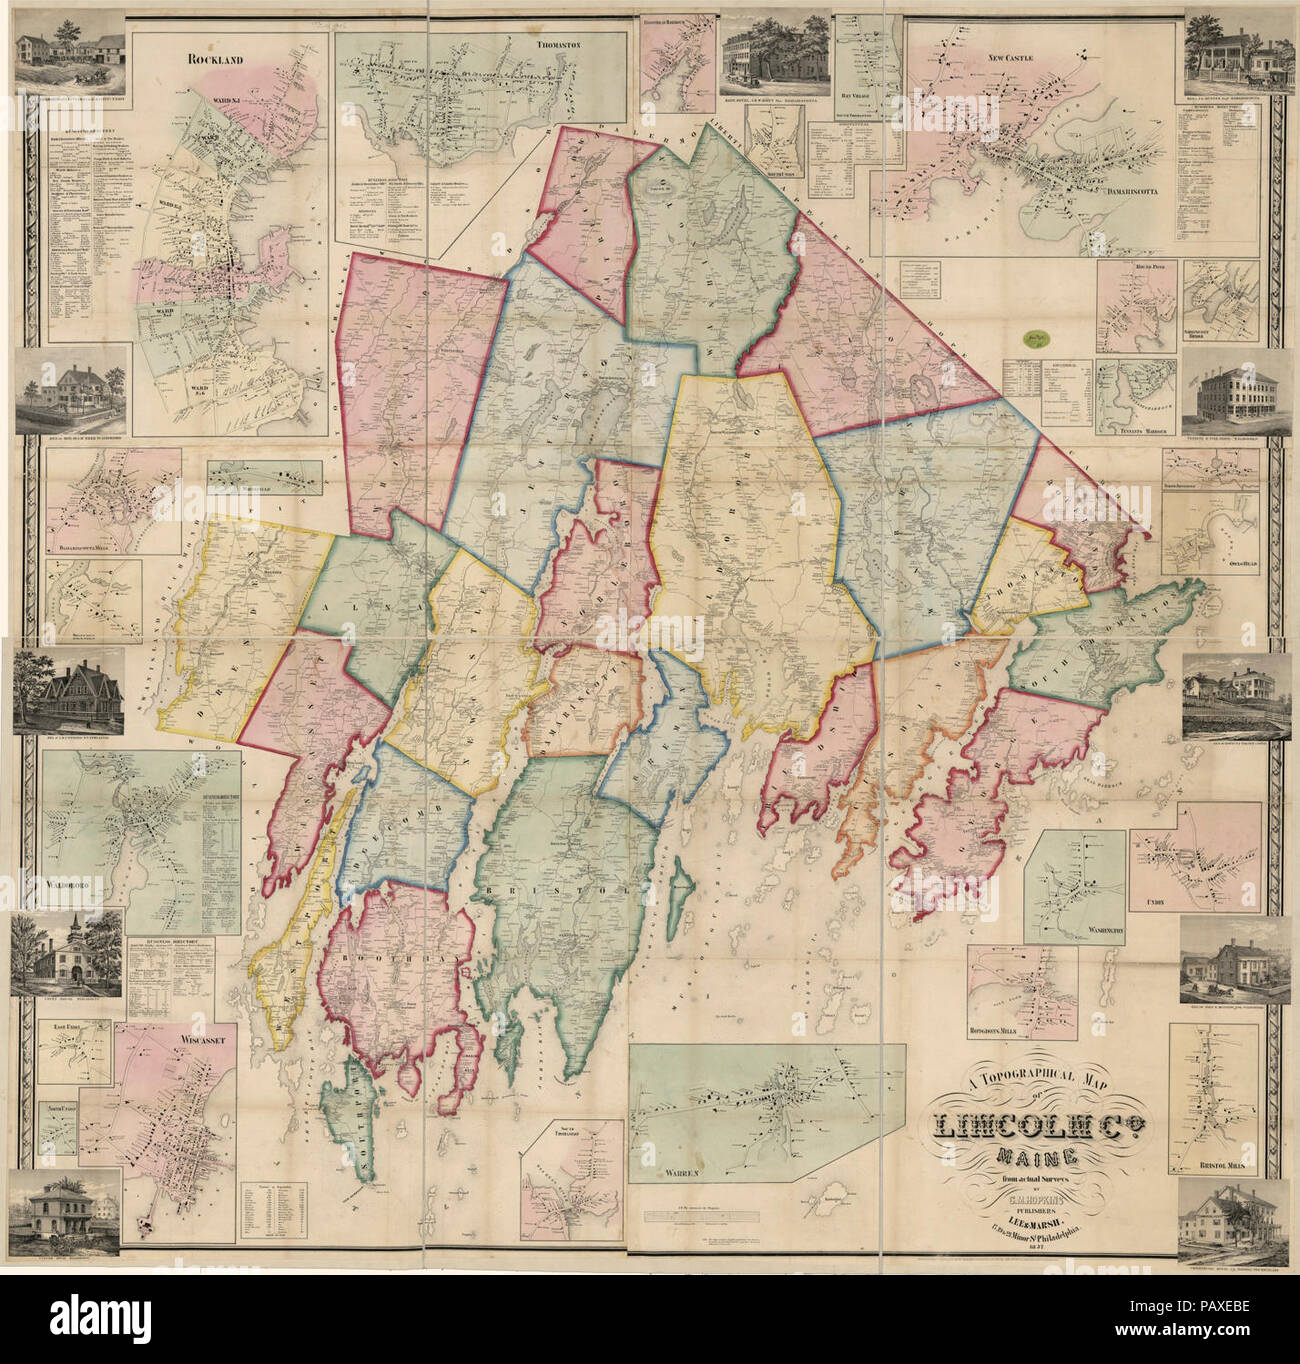 A Topographical Map Of Lincoln Co Maine From Actual Surveys Stock